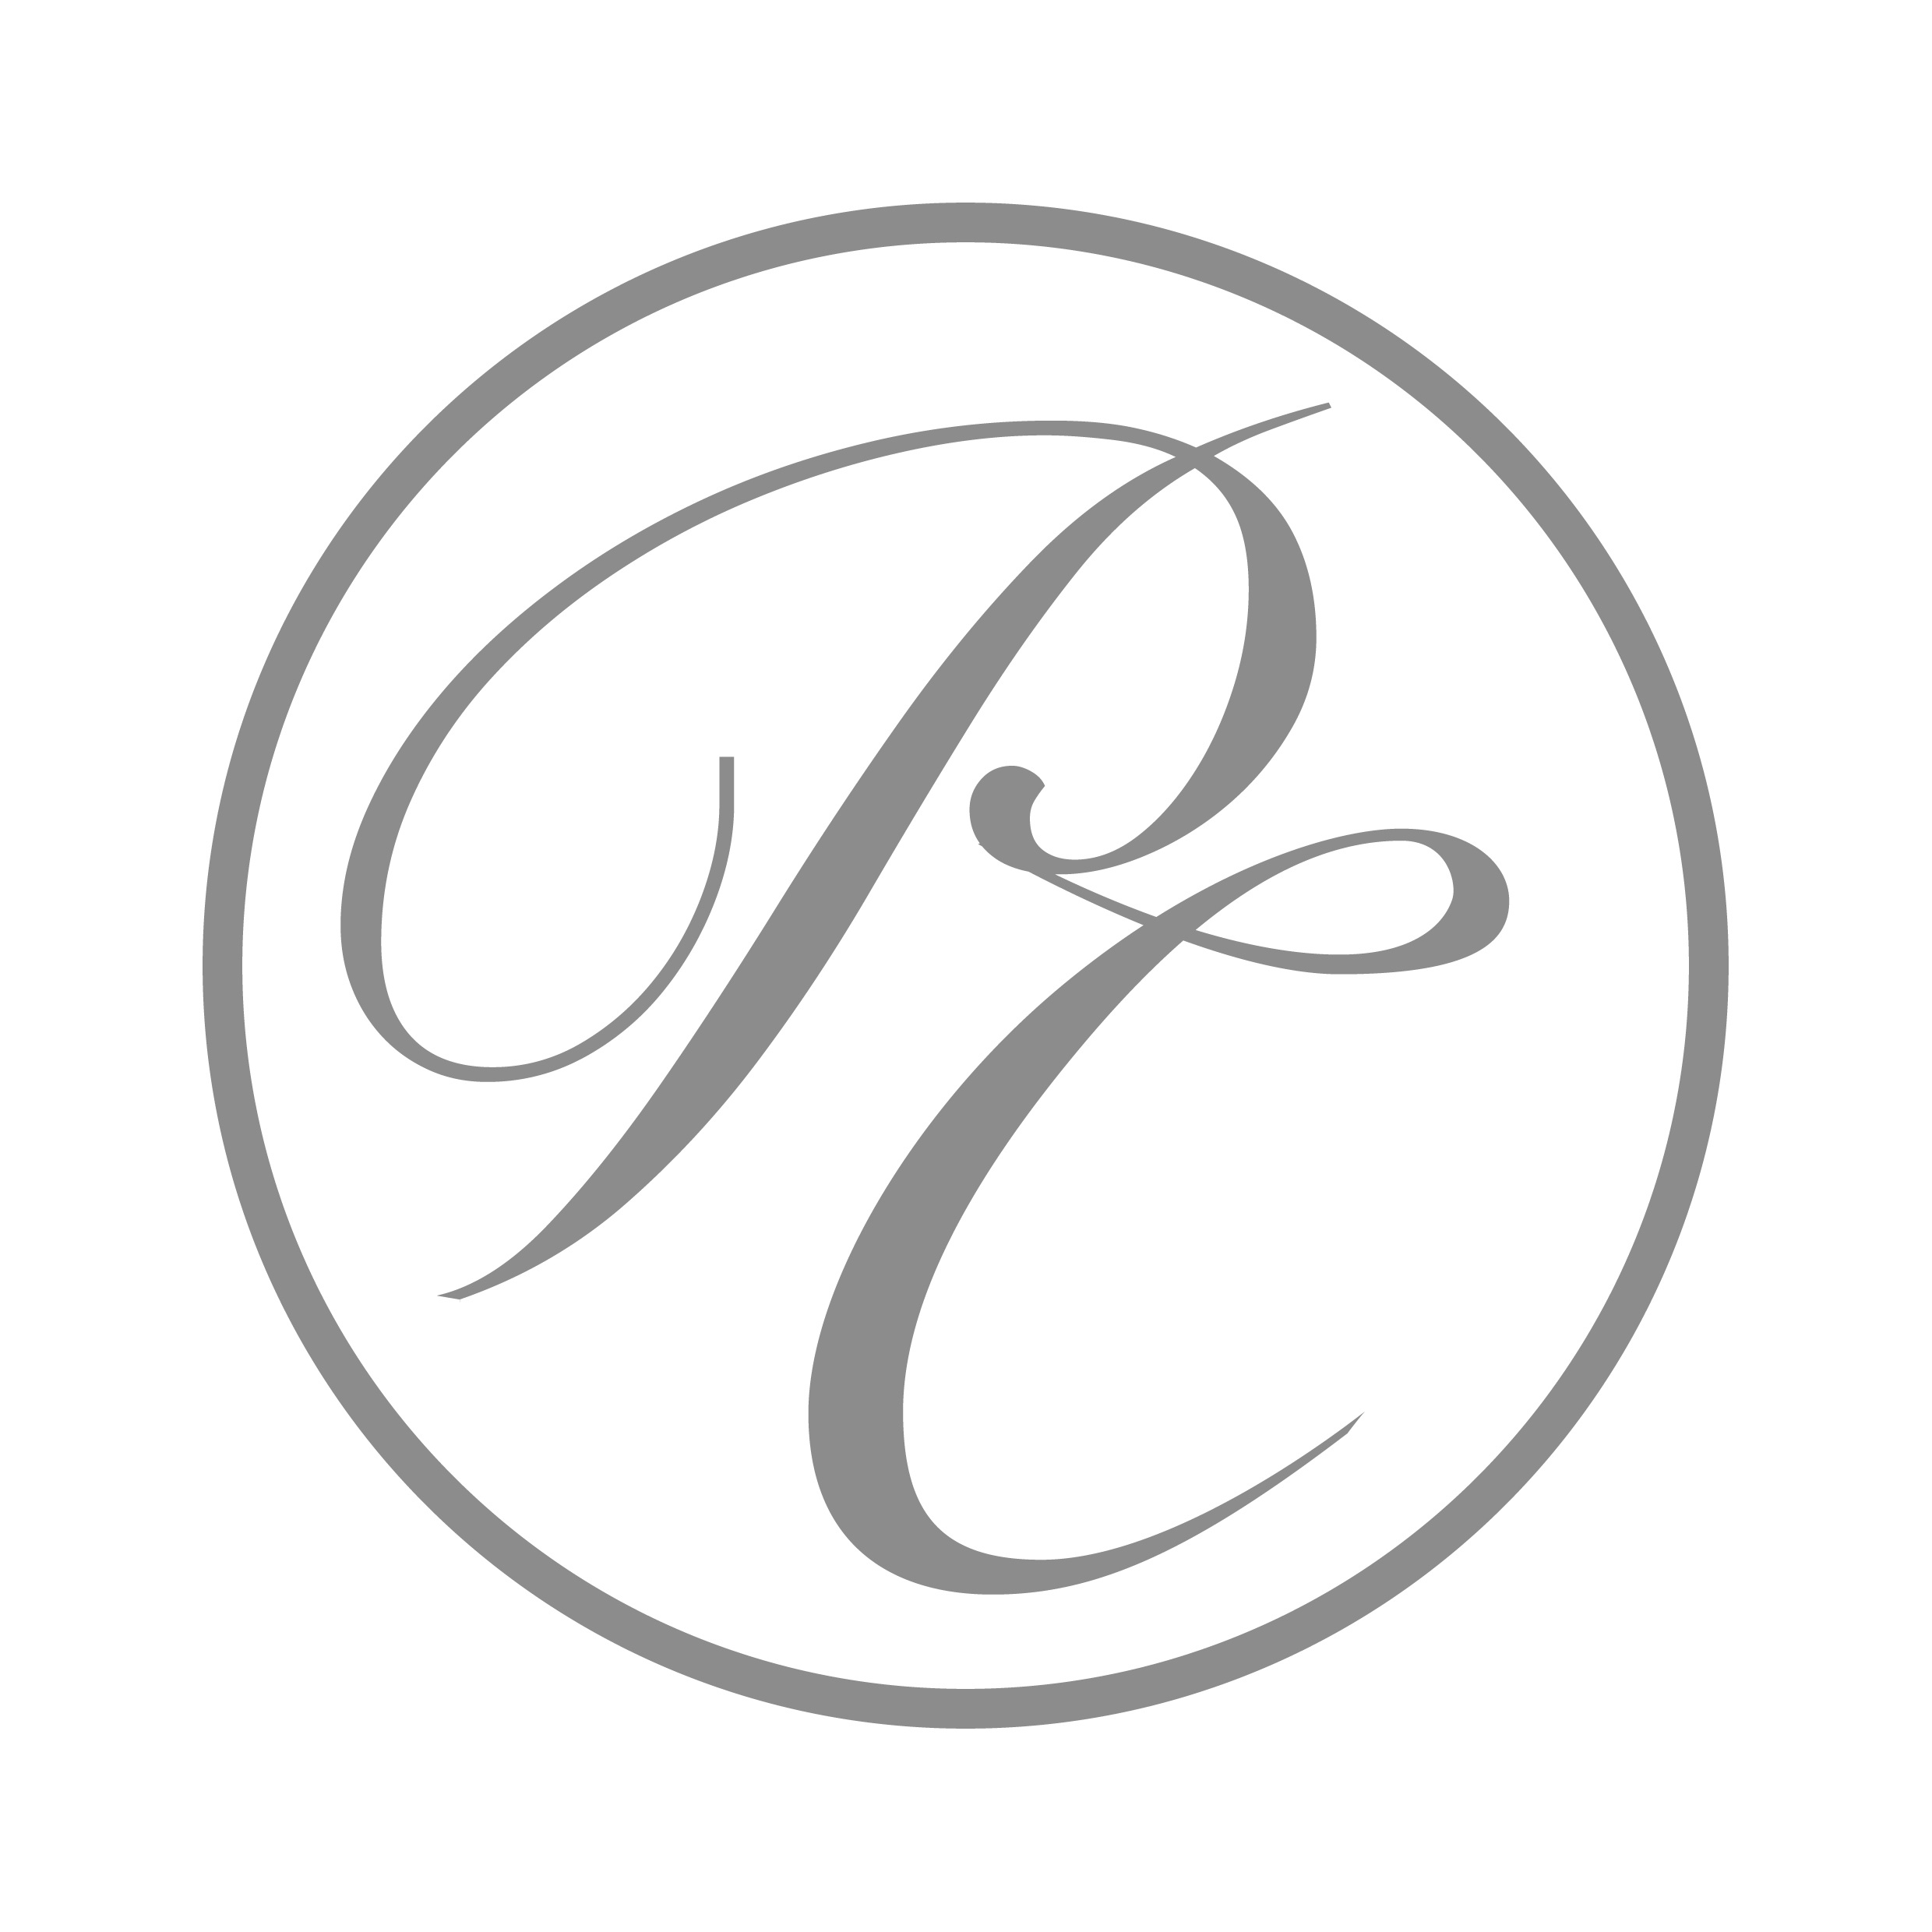 Picture of fashion stylist @pierrecarr personal logo